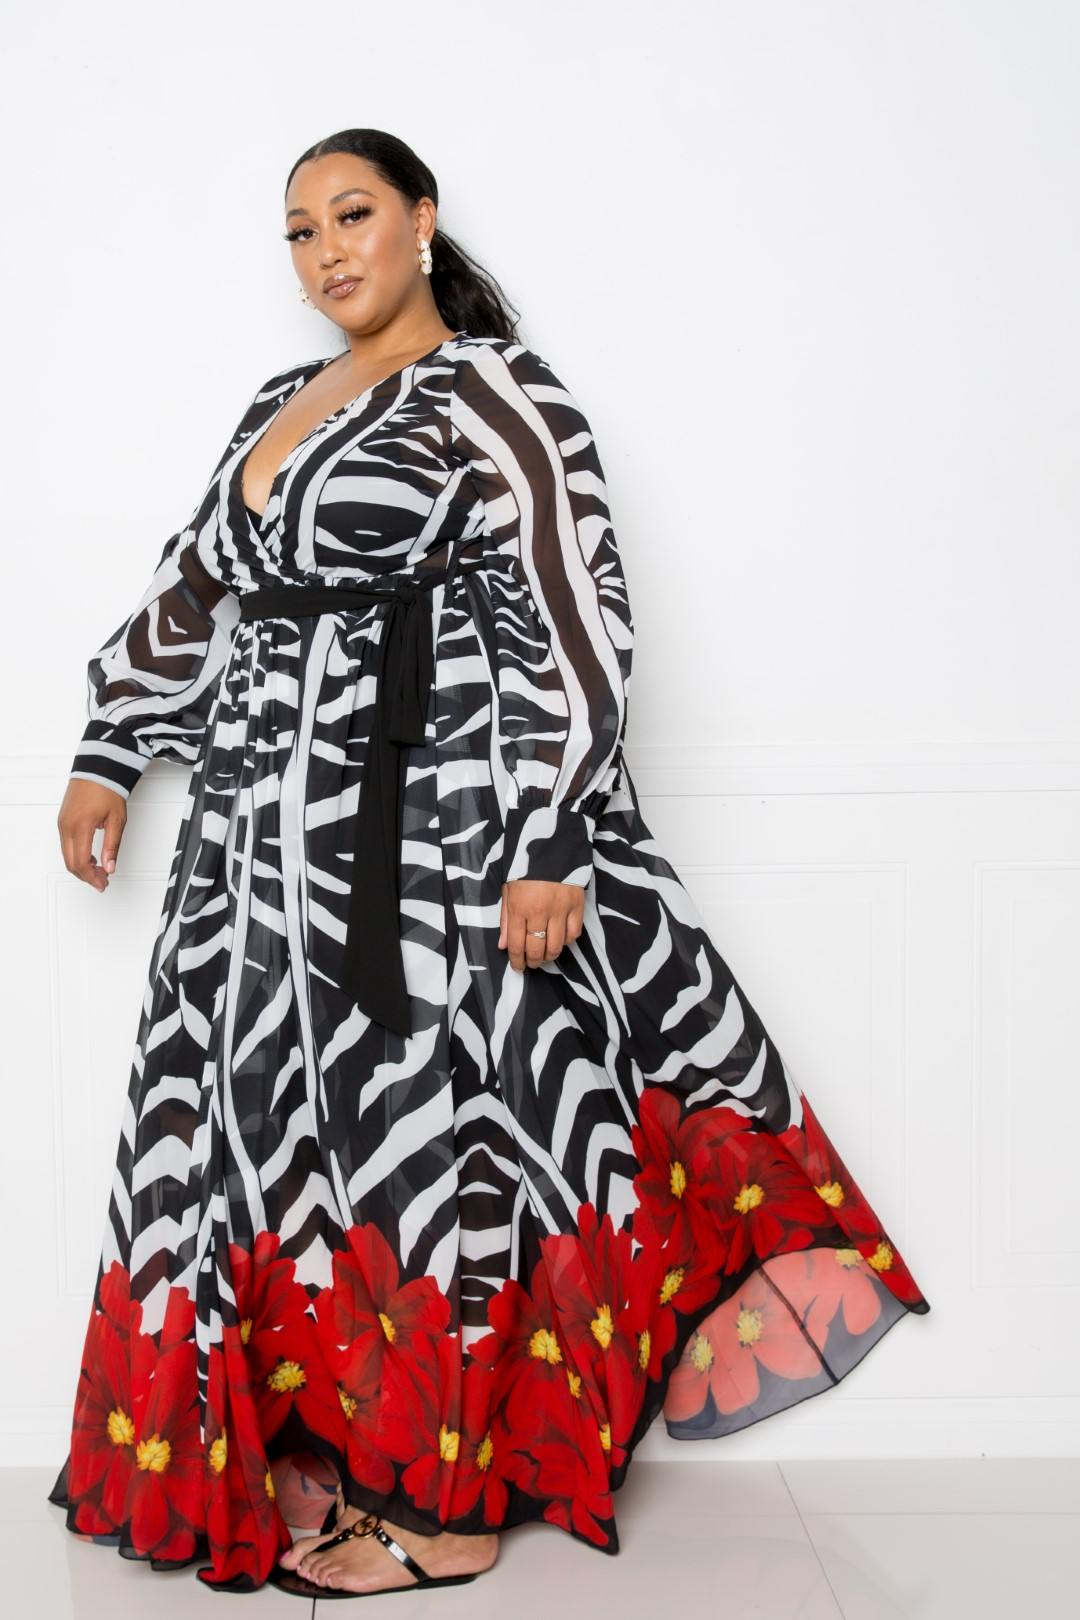 Zebra Printed Maxi Dress - Naughty Smile Fashion